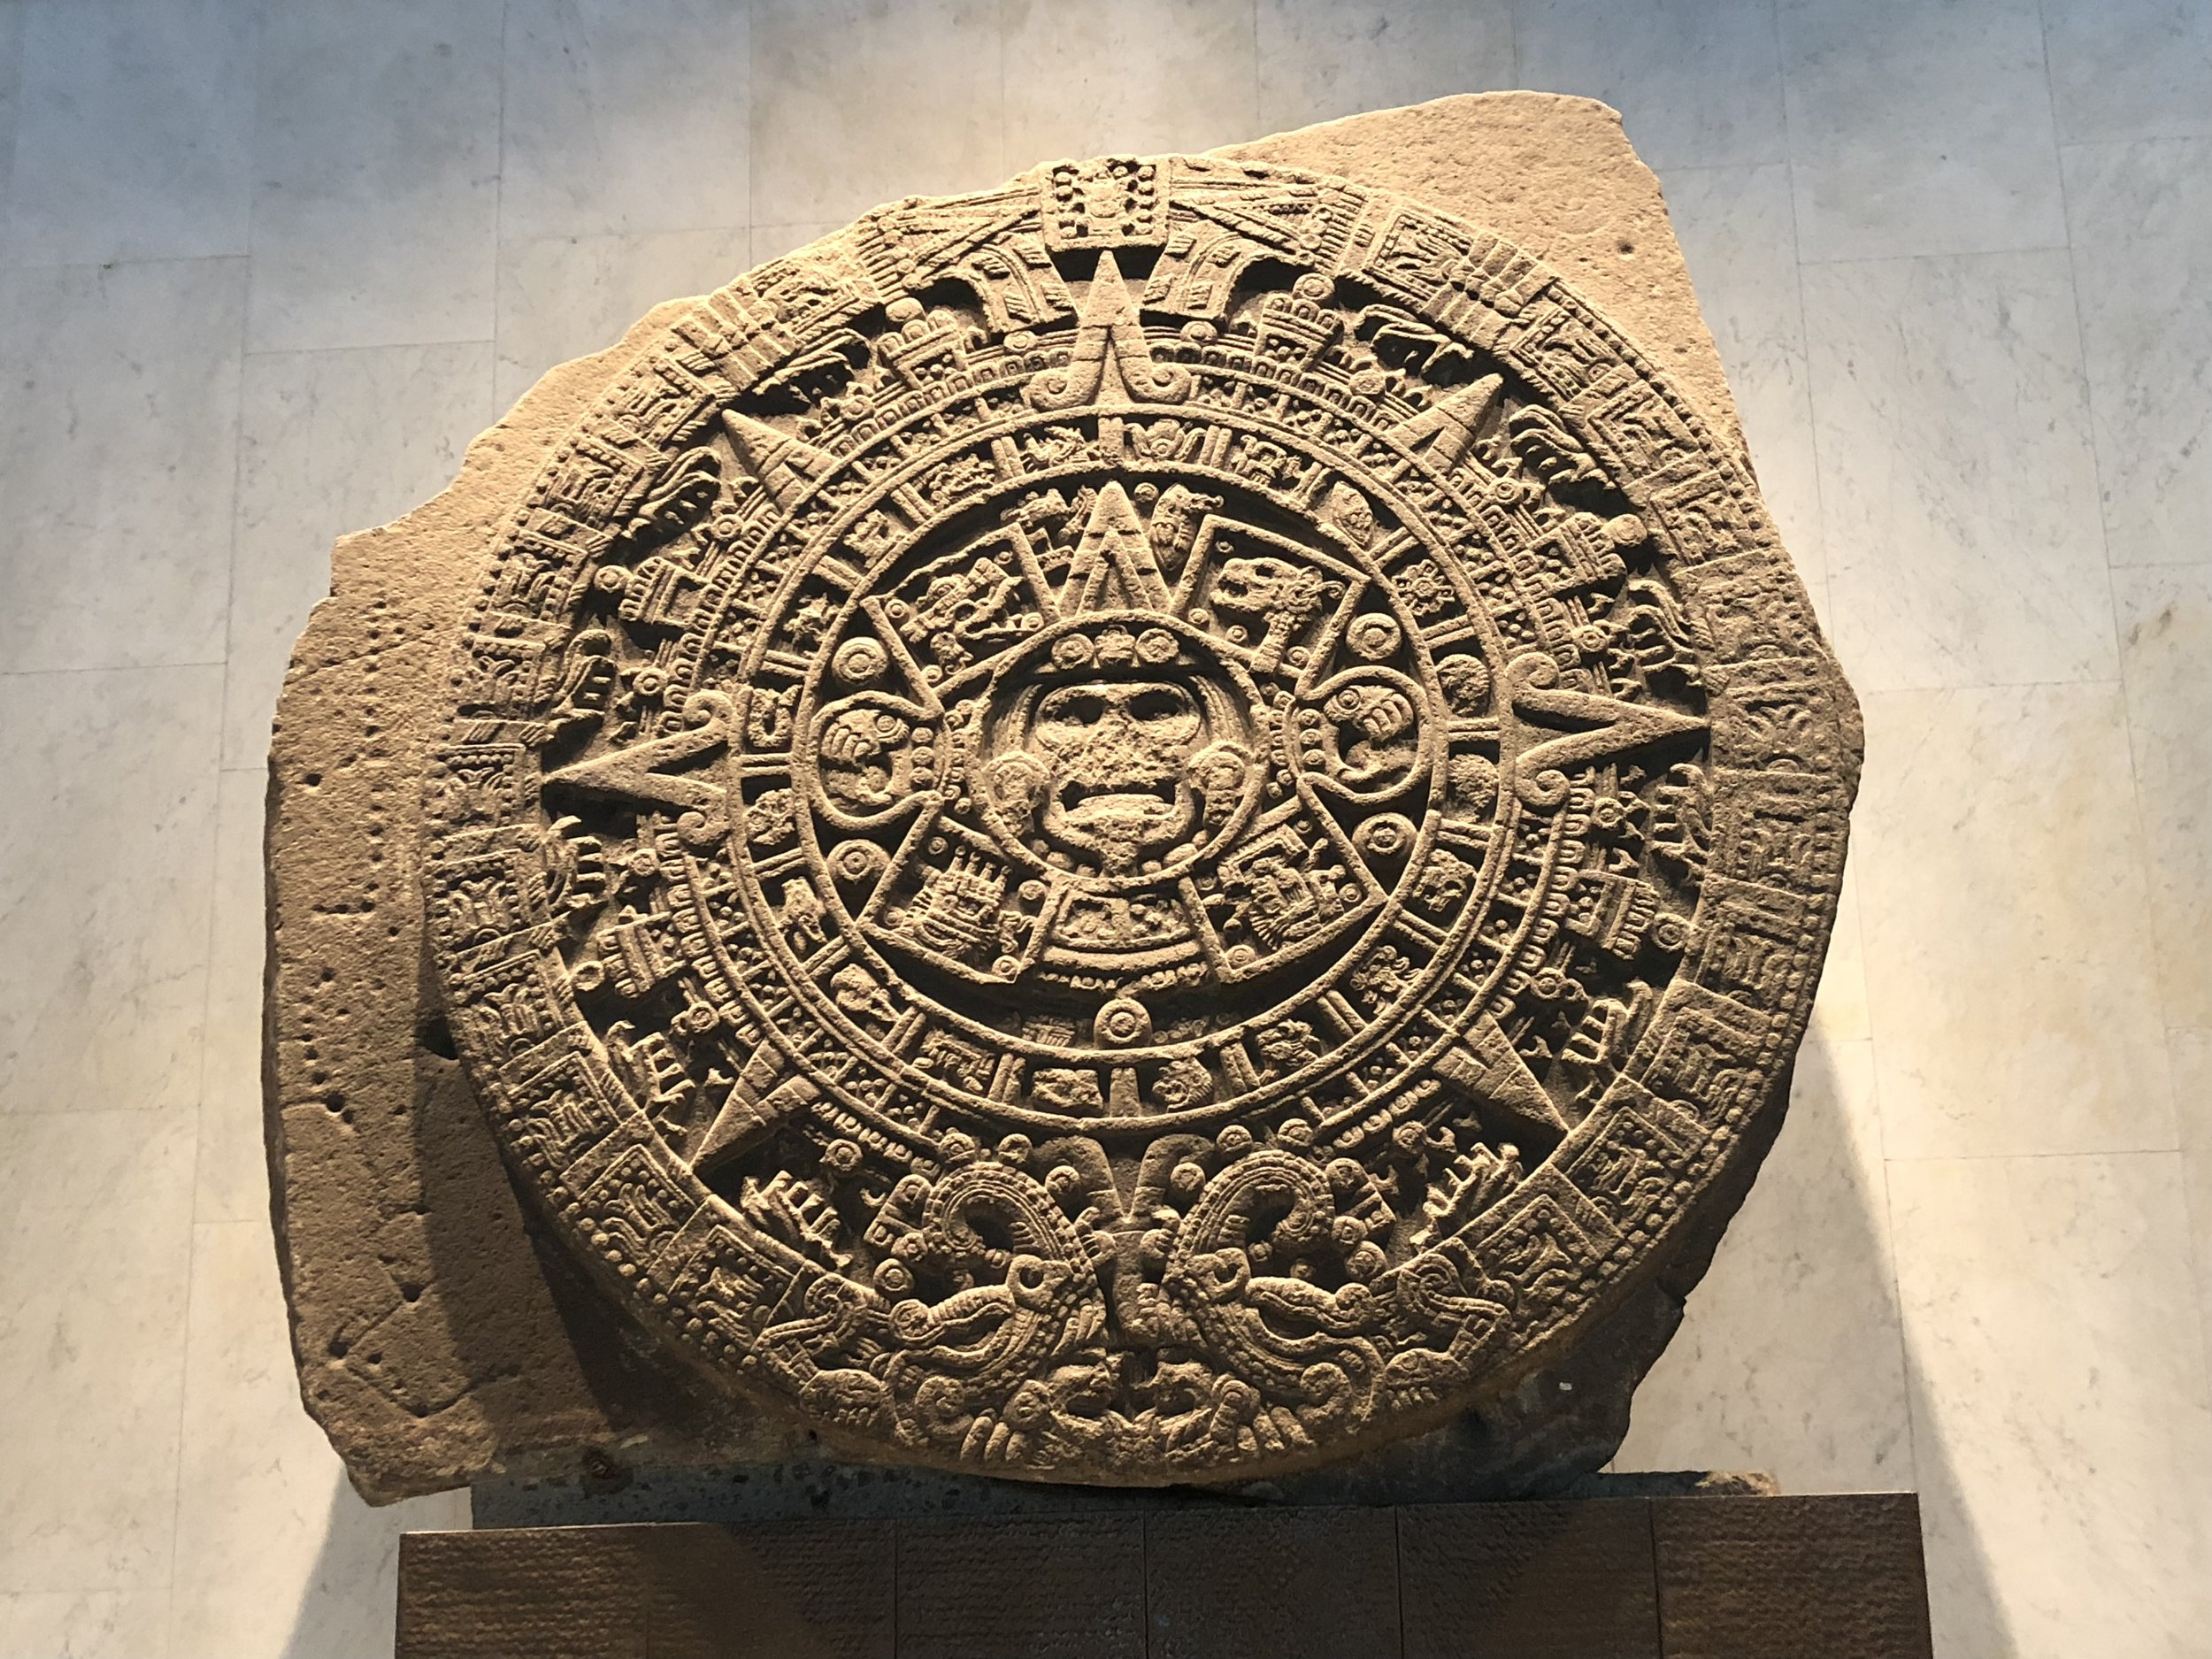 Aztec calendar stone. What time is it?